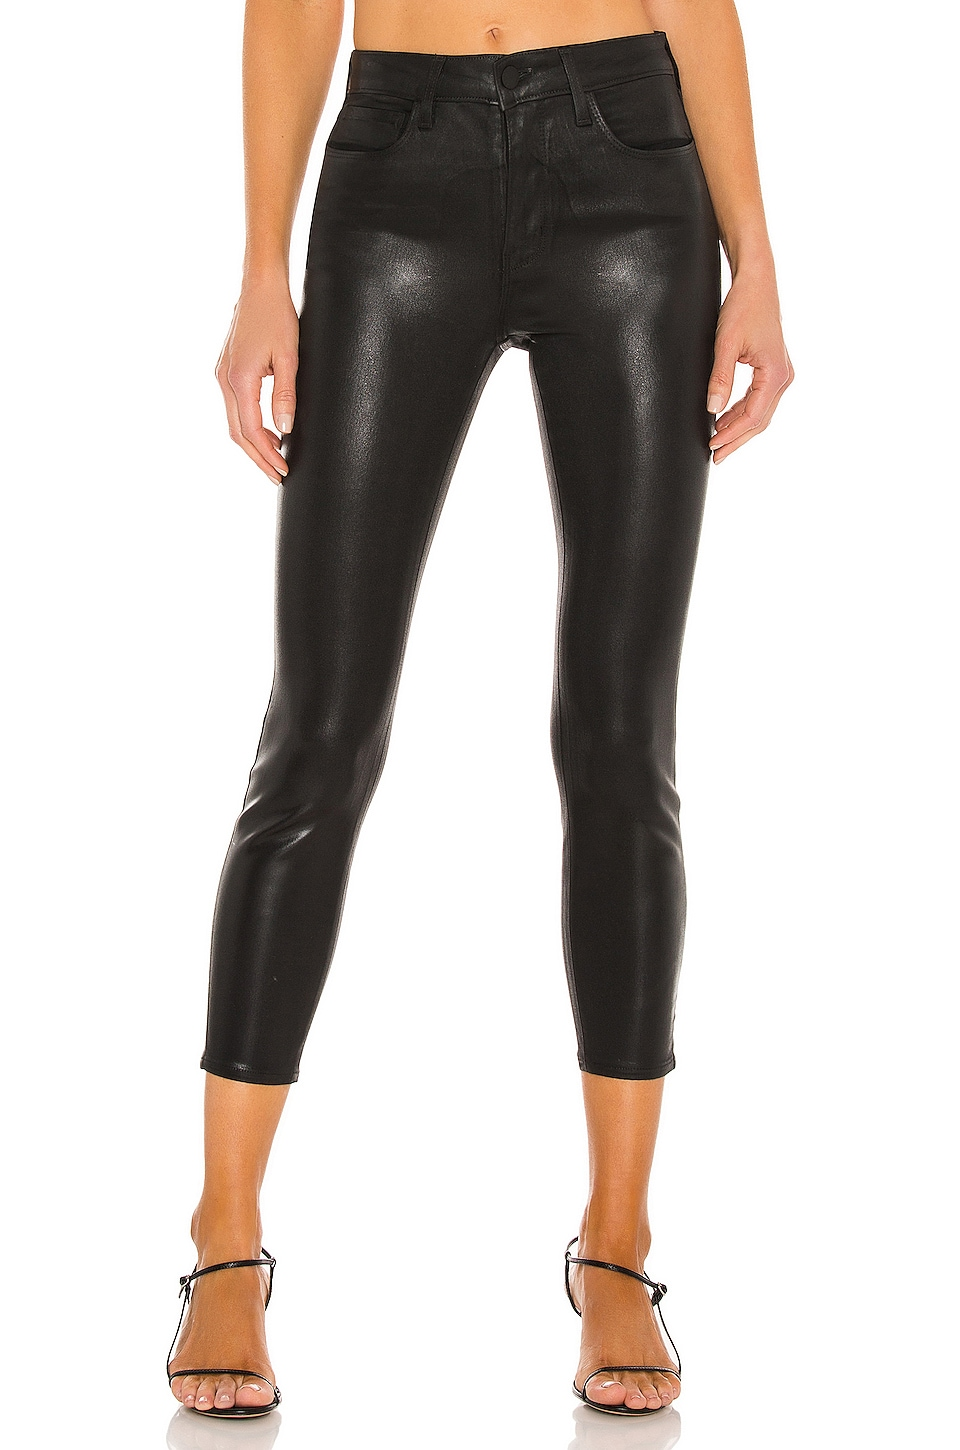 L'AGENCE Margot Skinny Jean in Black Coated